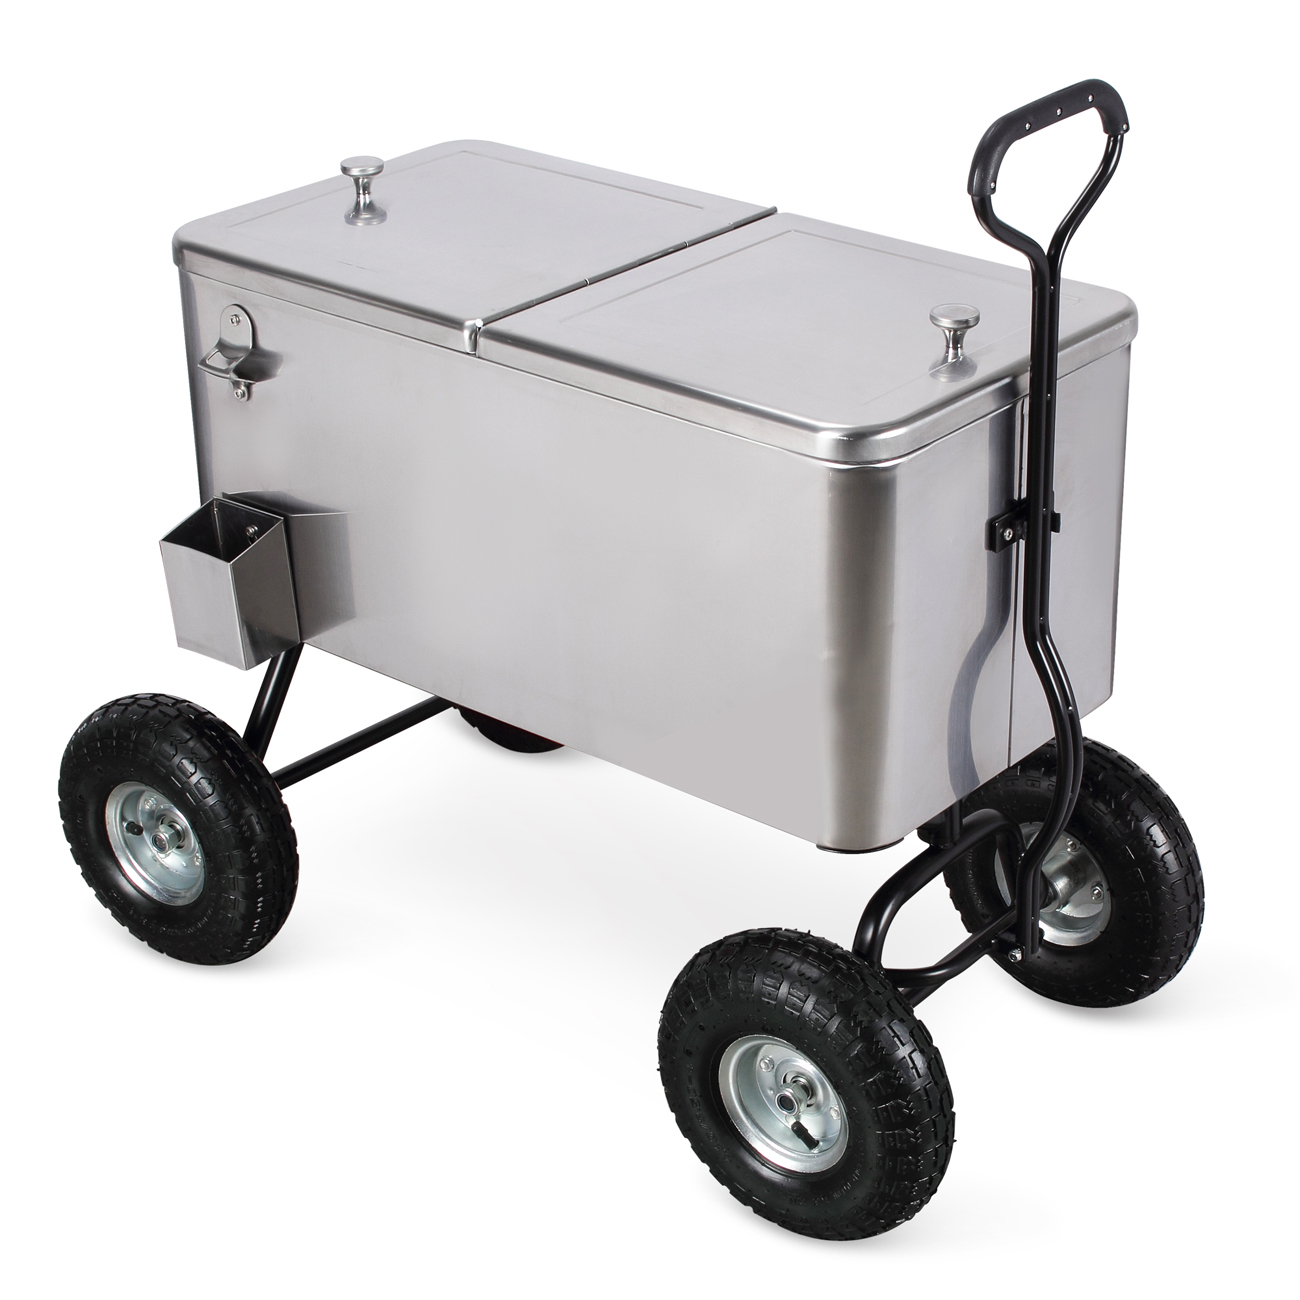 Details about Outdoor 80 Qt Portable Beach Party Backyard Patio Cooler Wagon Stainless Steel  sc 1 st  eBay & Outdoor 80 Qt Portable Beach Party Backyard Patio Cooler Wagon ...